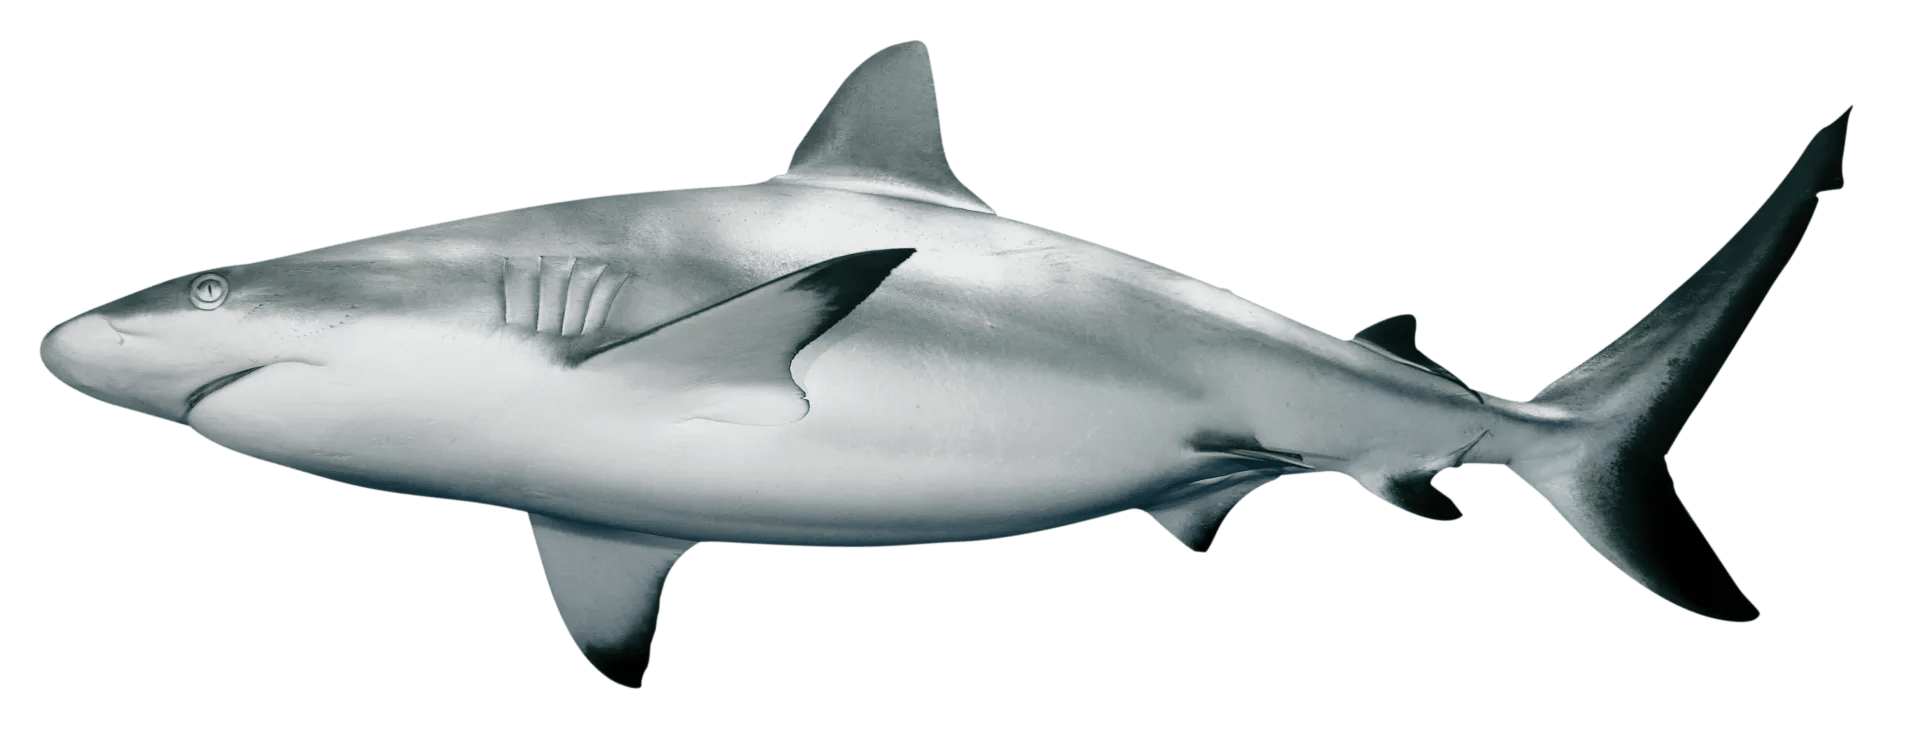 Shark Facts For Kids   Information On Sharks   DK Find Out Grey reef shark dreamstime xl 5569552 qmsbfl